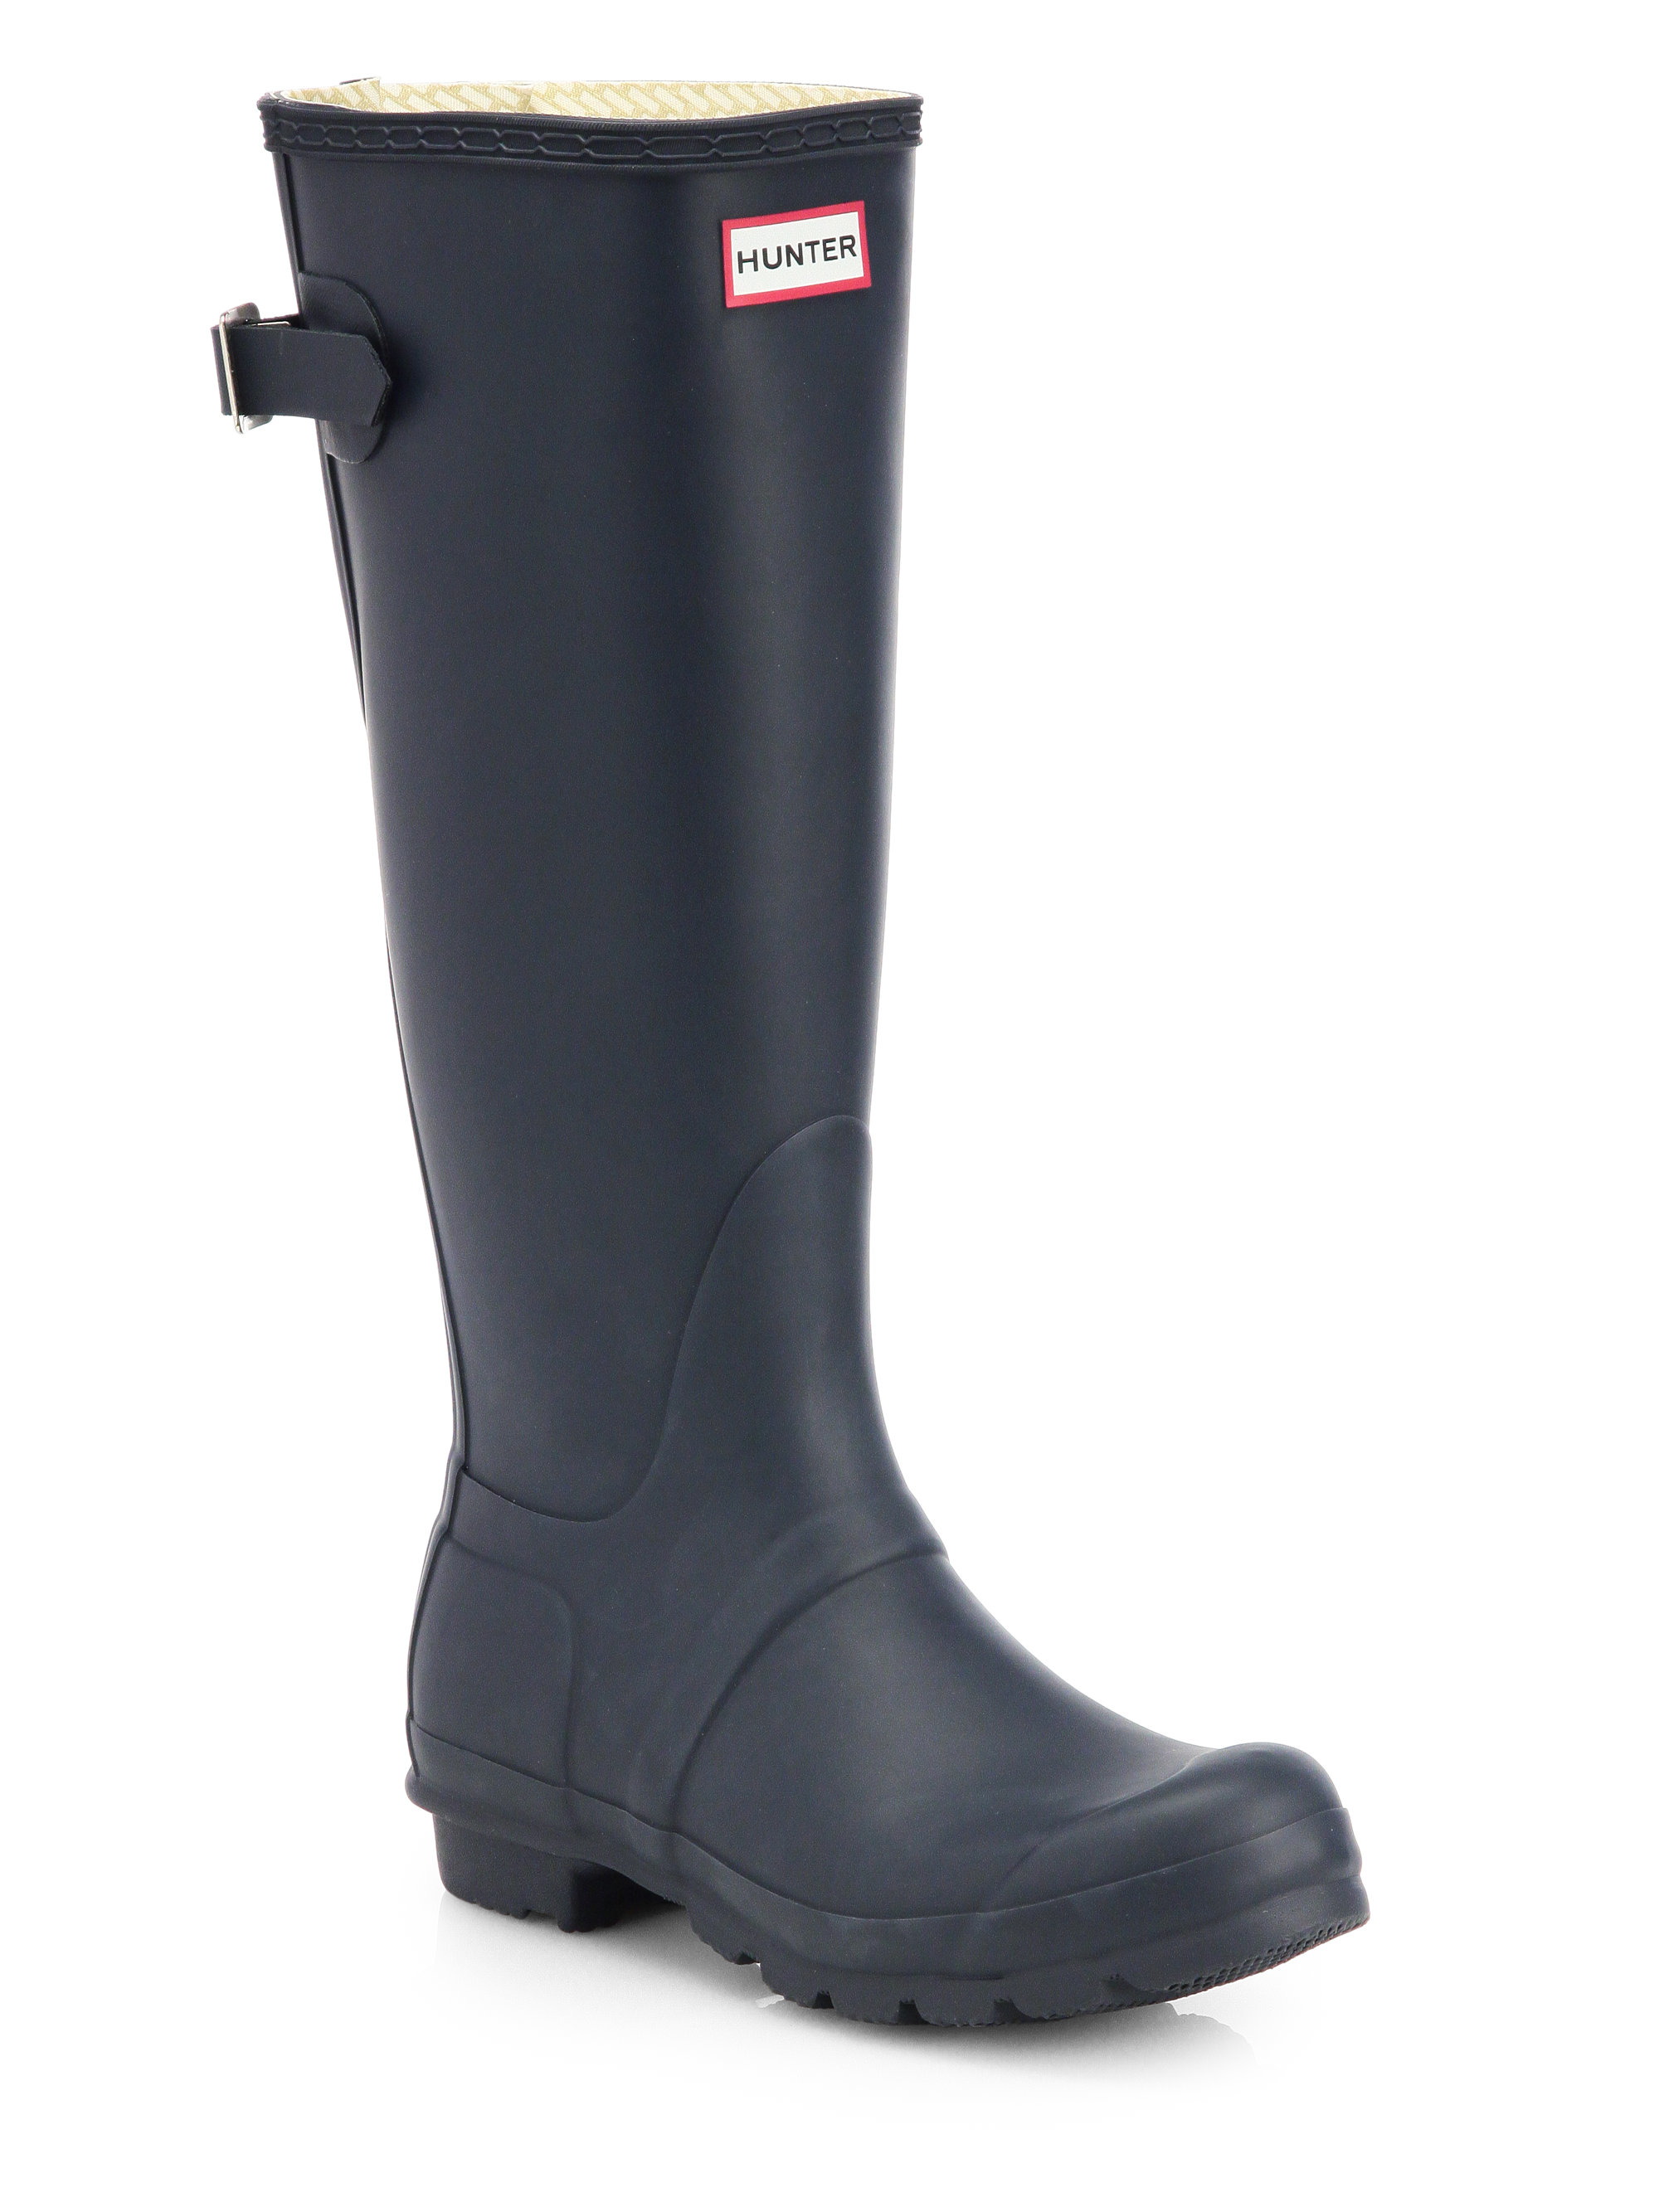 Model Hunter Womenu0026#39;s Original Tall Wellington Boots - Navy | Free Delivery*